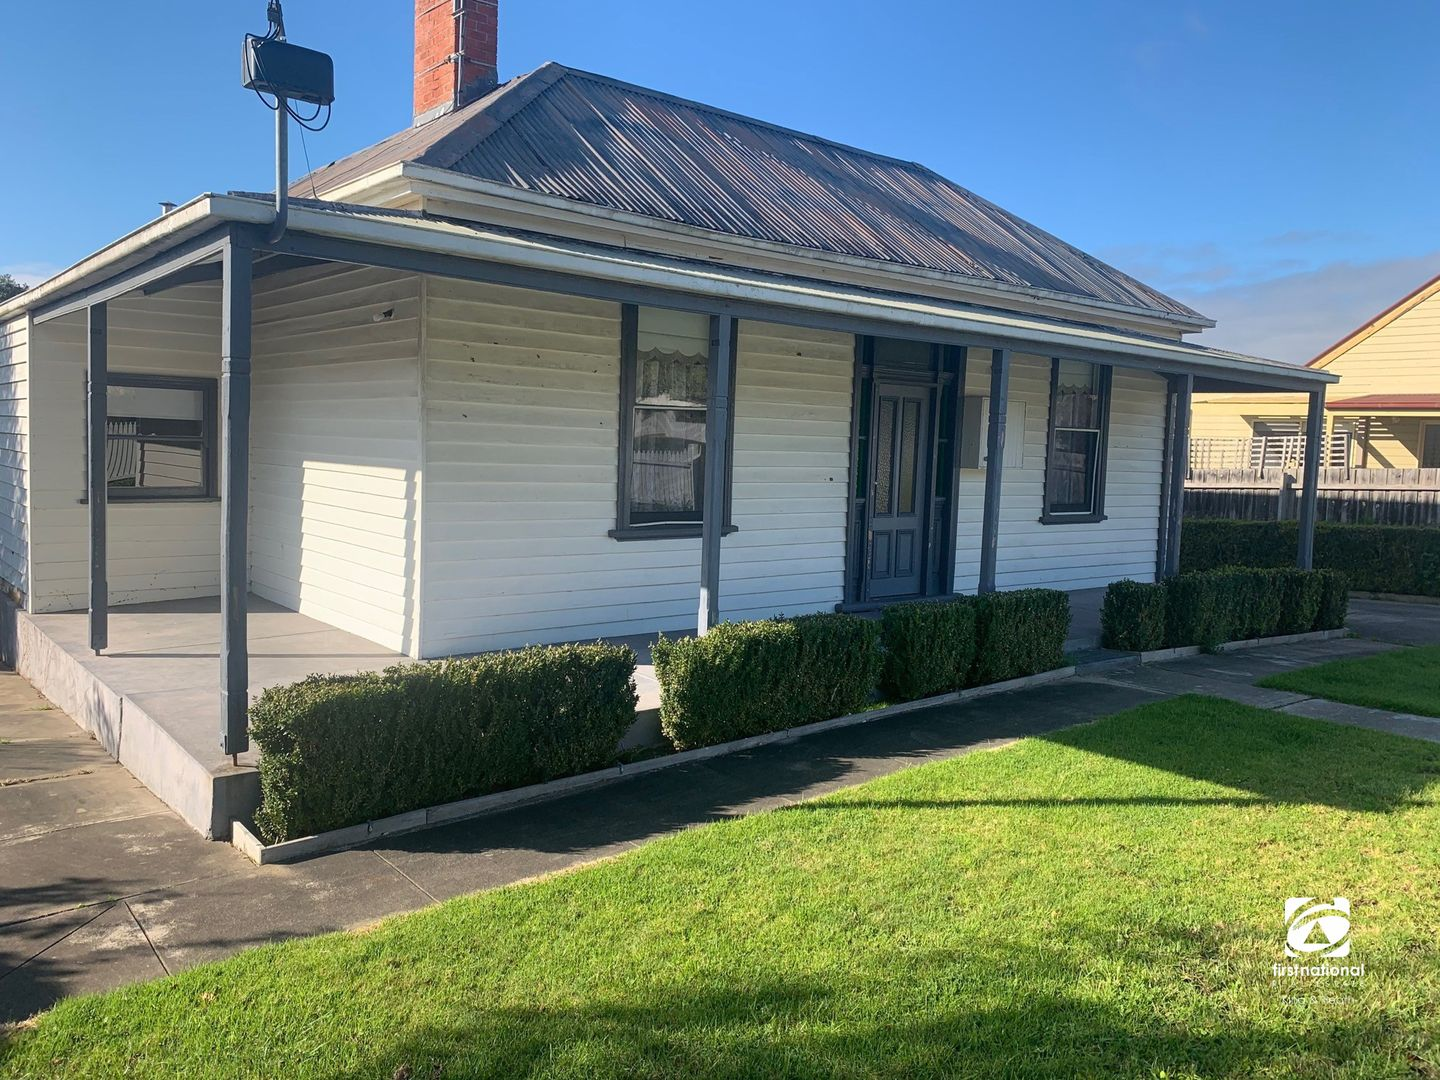 103 Day Street, Bairnsdale VIC 3875, Image 0